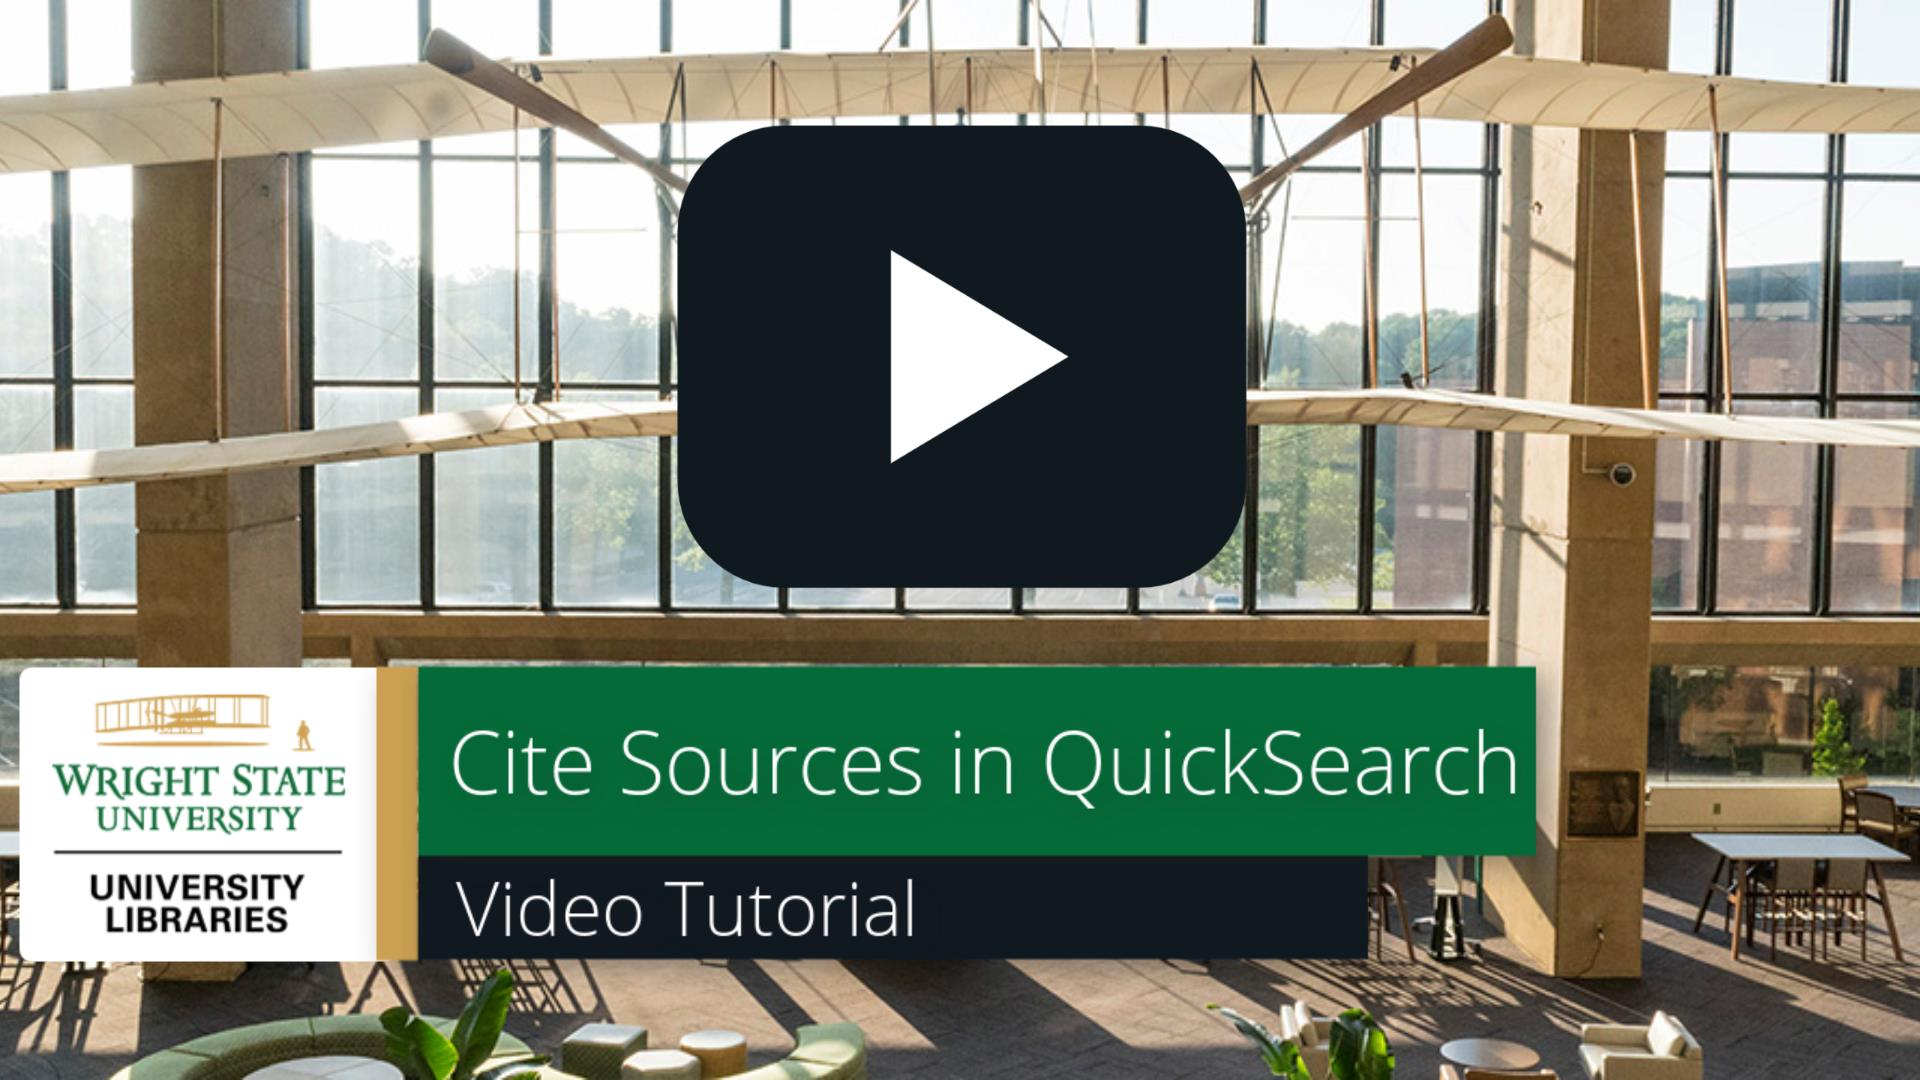 Cite Sources in QuickSearch: Video Tutorial